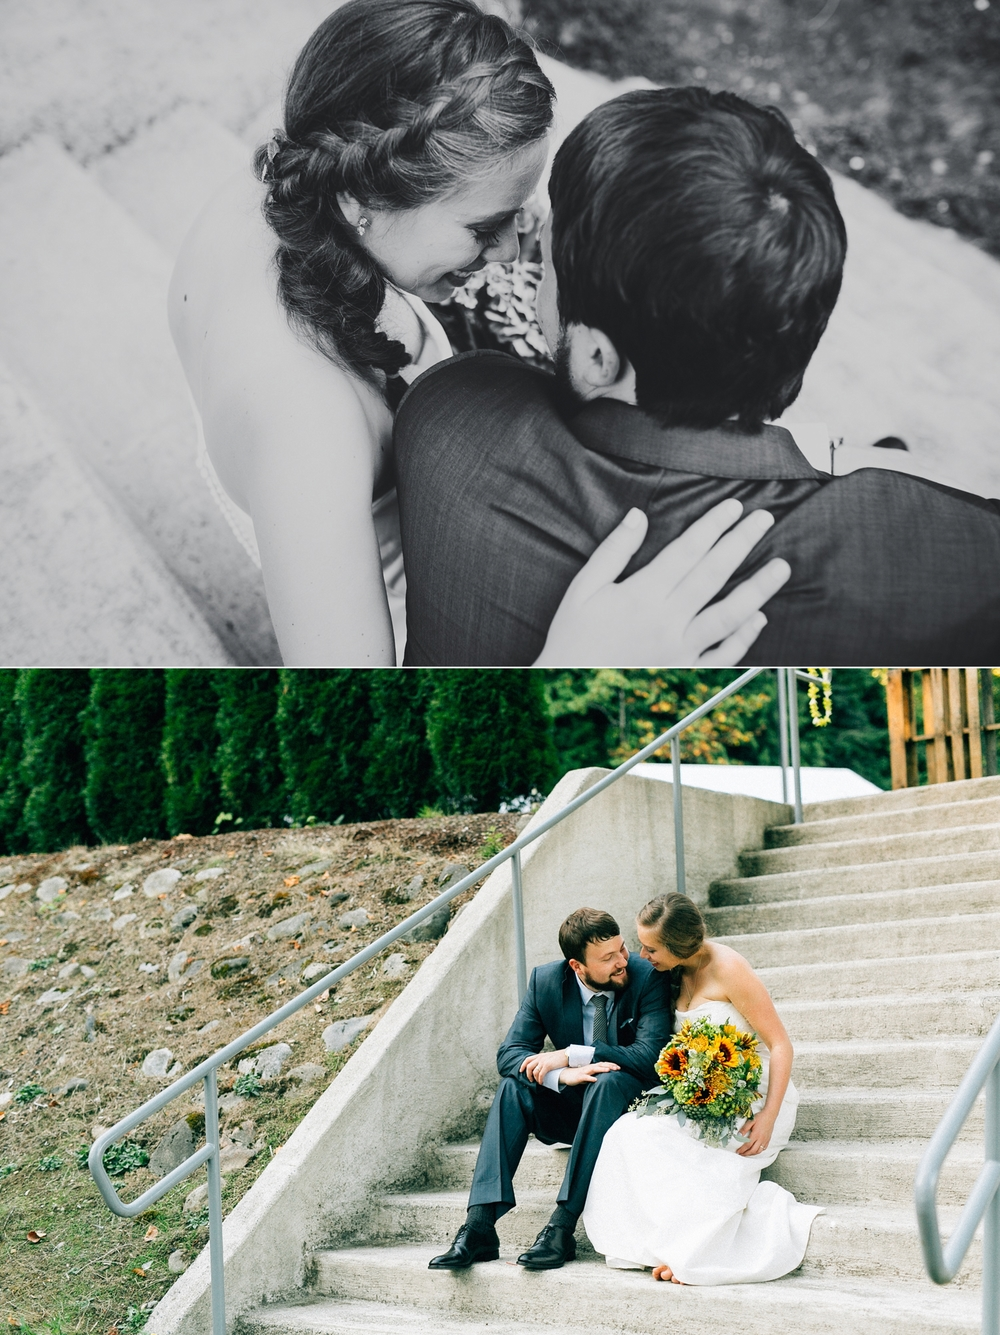 ashley vos photography seattle area wedding photographer_0765.jpg